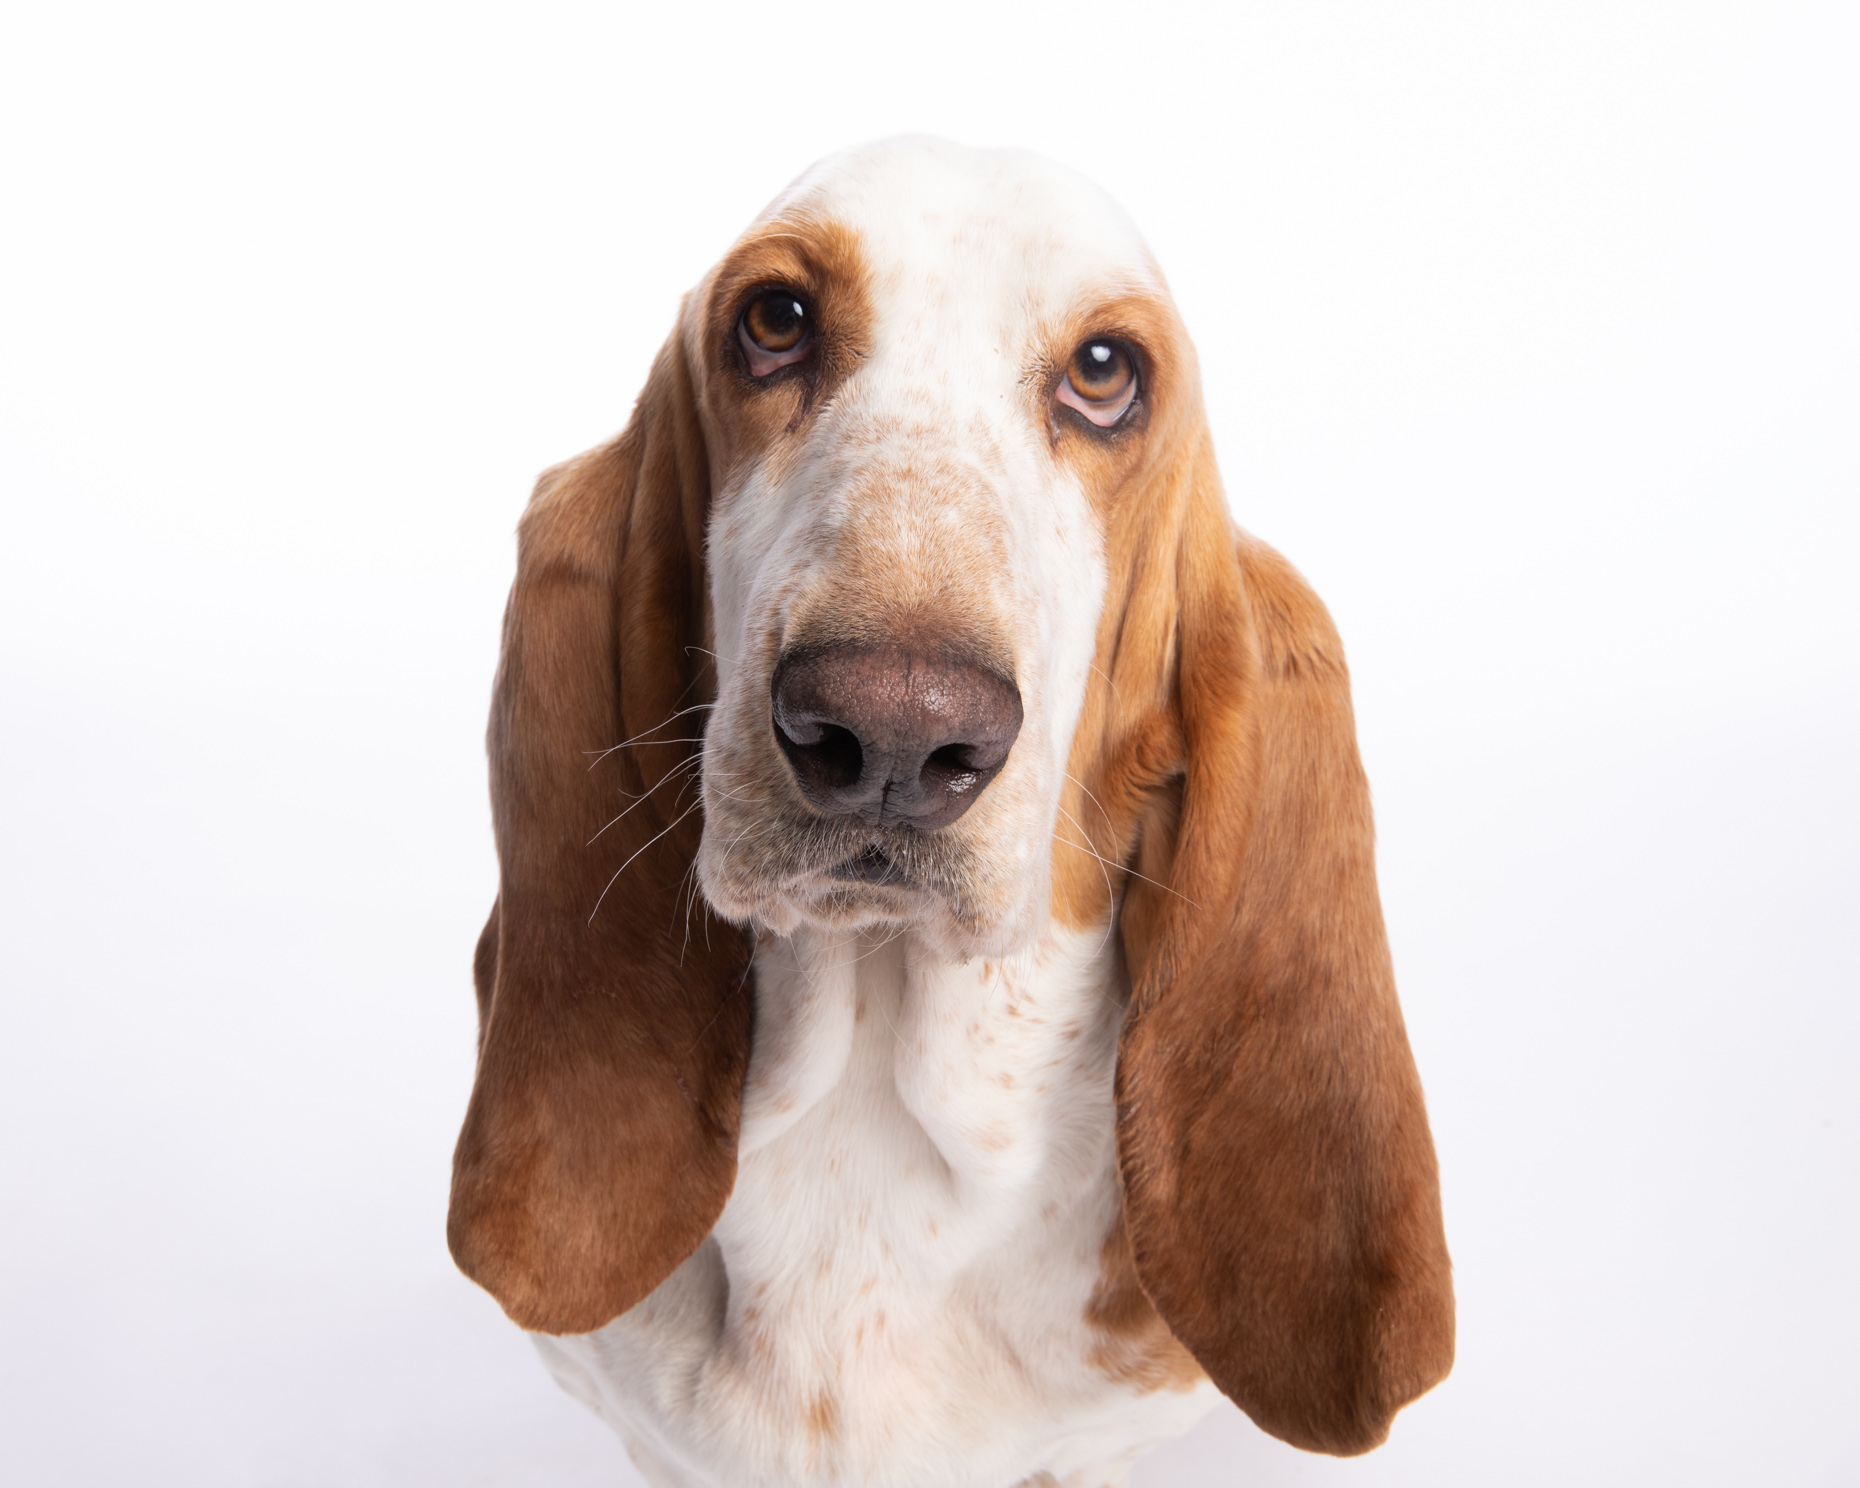 Dog Studio Photography | Serious-Looking Basset Hound by Mark Rogers